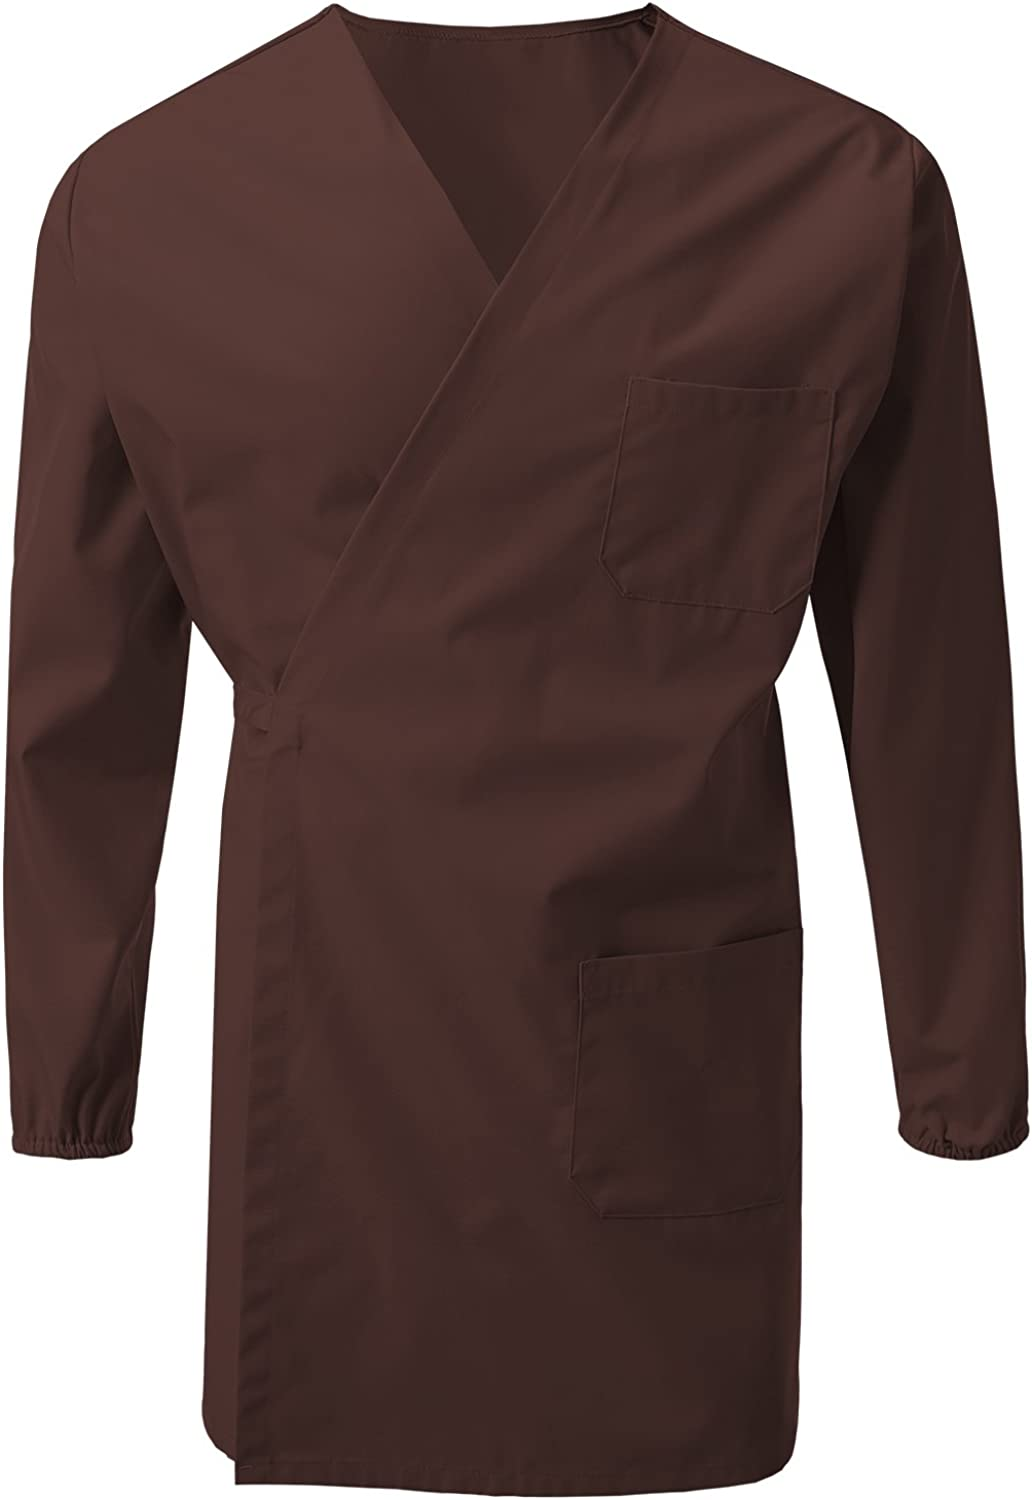 7 Encounter Unisex Multifunctional Wrap Smock with Chest and Side Pockets